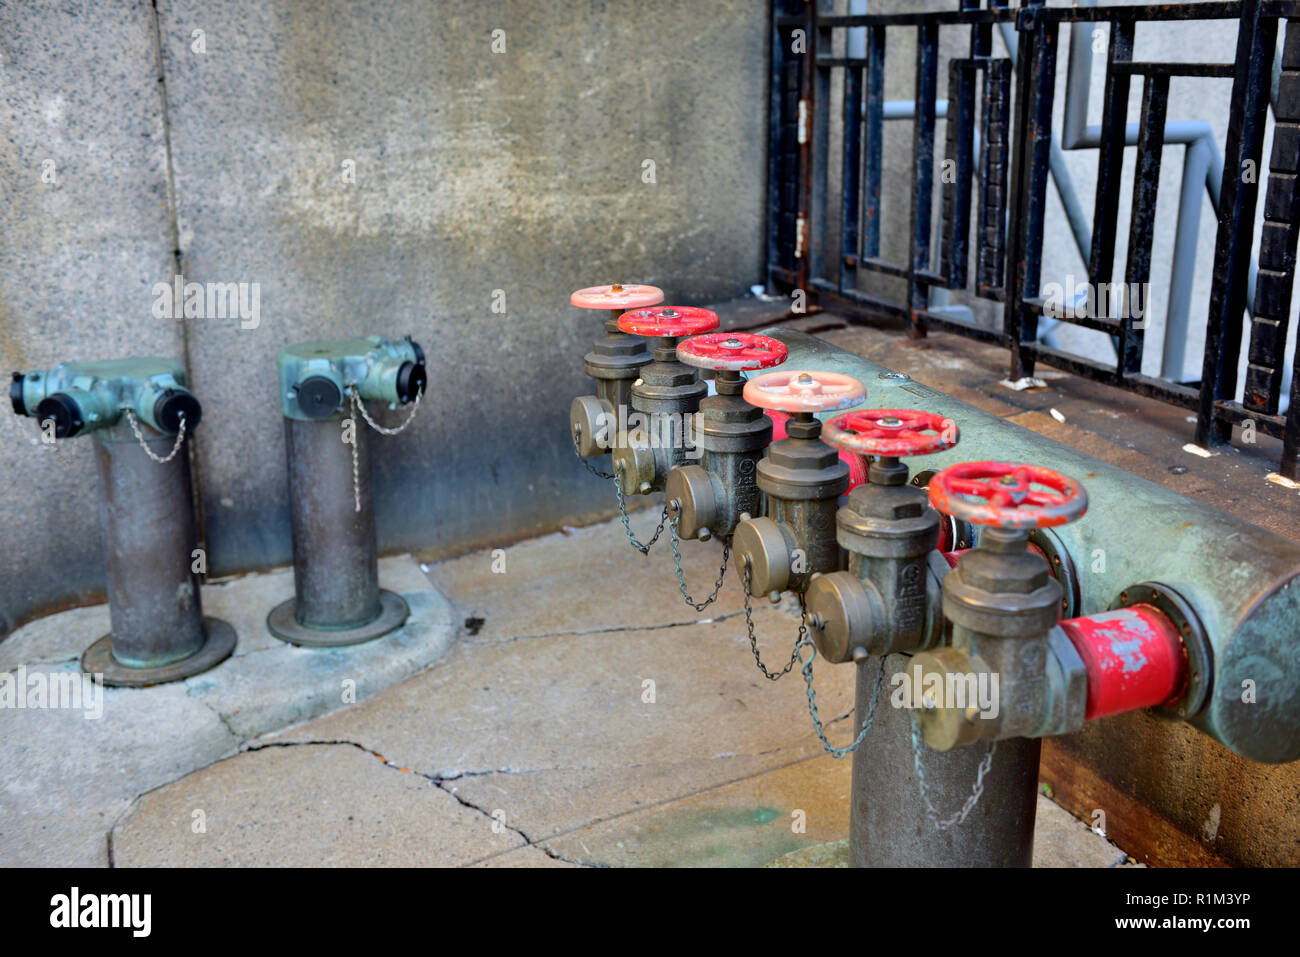 Fire hose dry risers, standpipes, in high rise building, Boston, Massachusetts - Stock Image